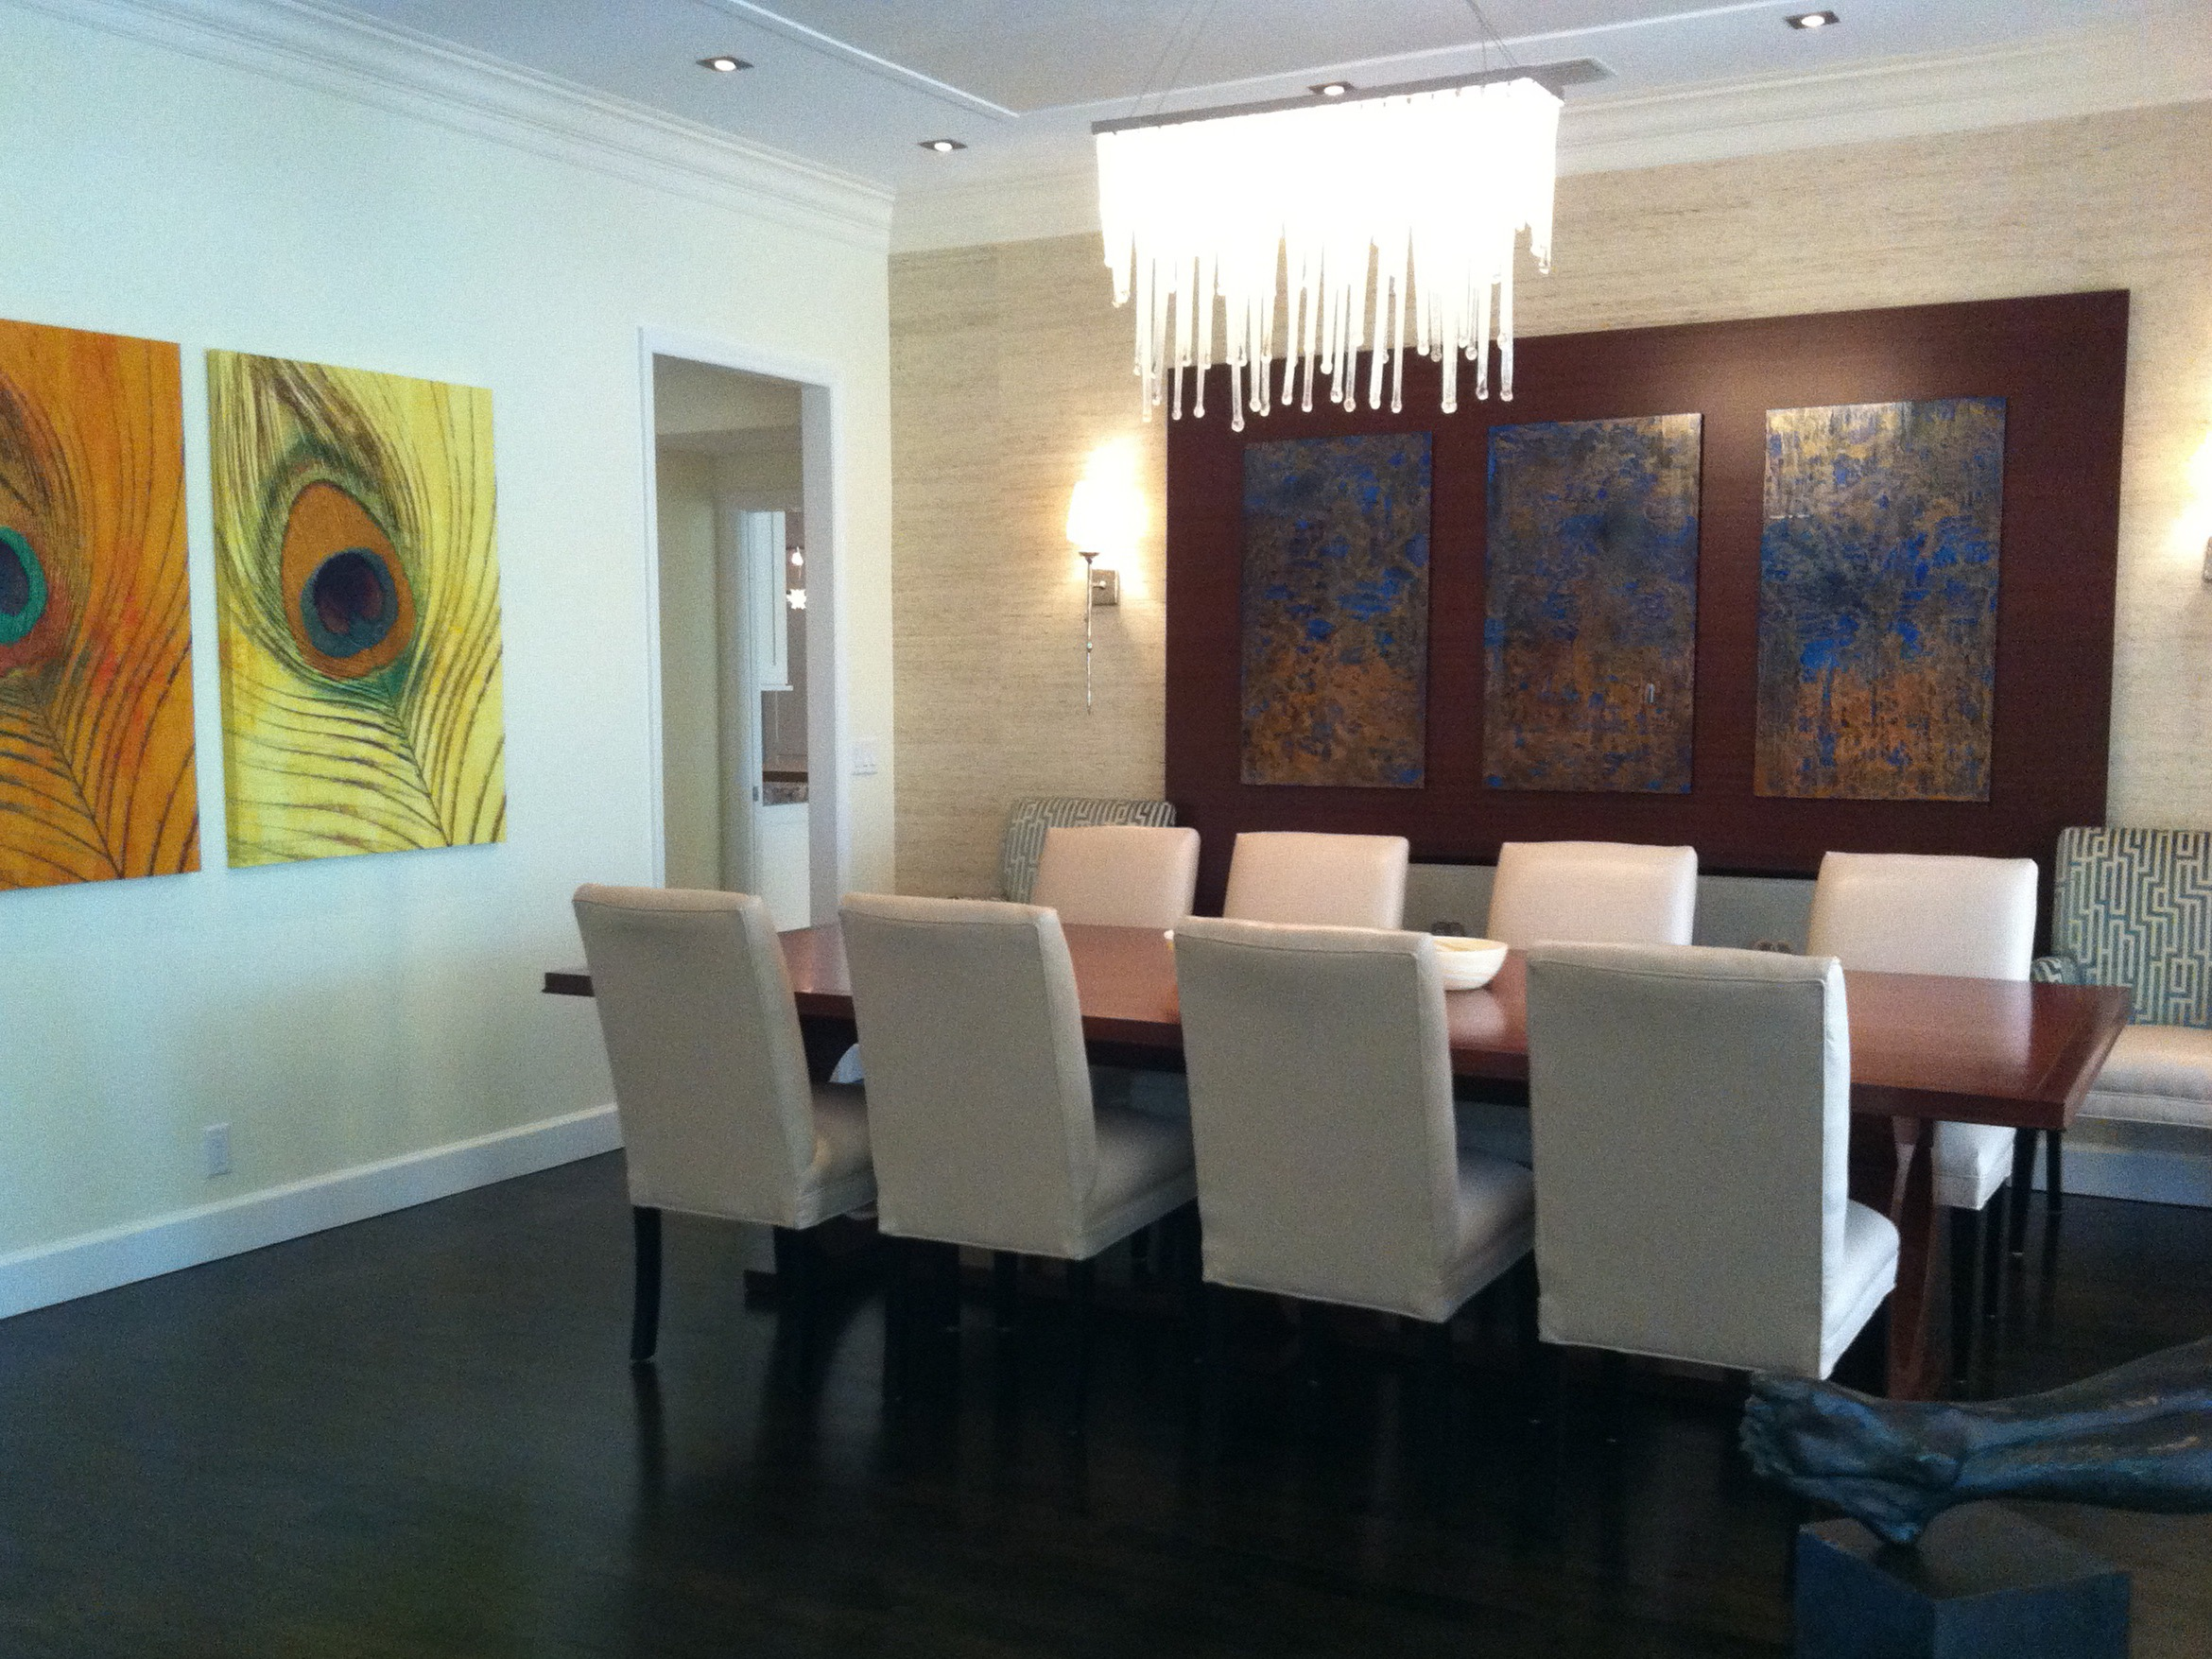 Contemporary Dining Room Furniture And Lighting (View 14 of 42)